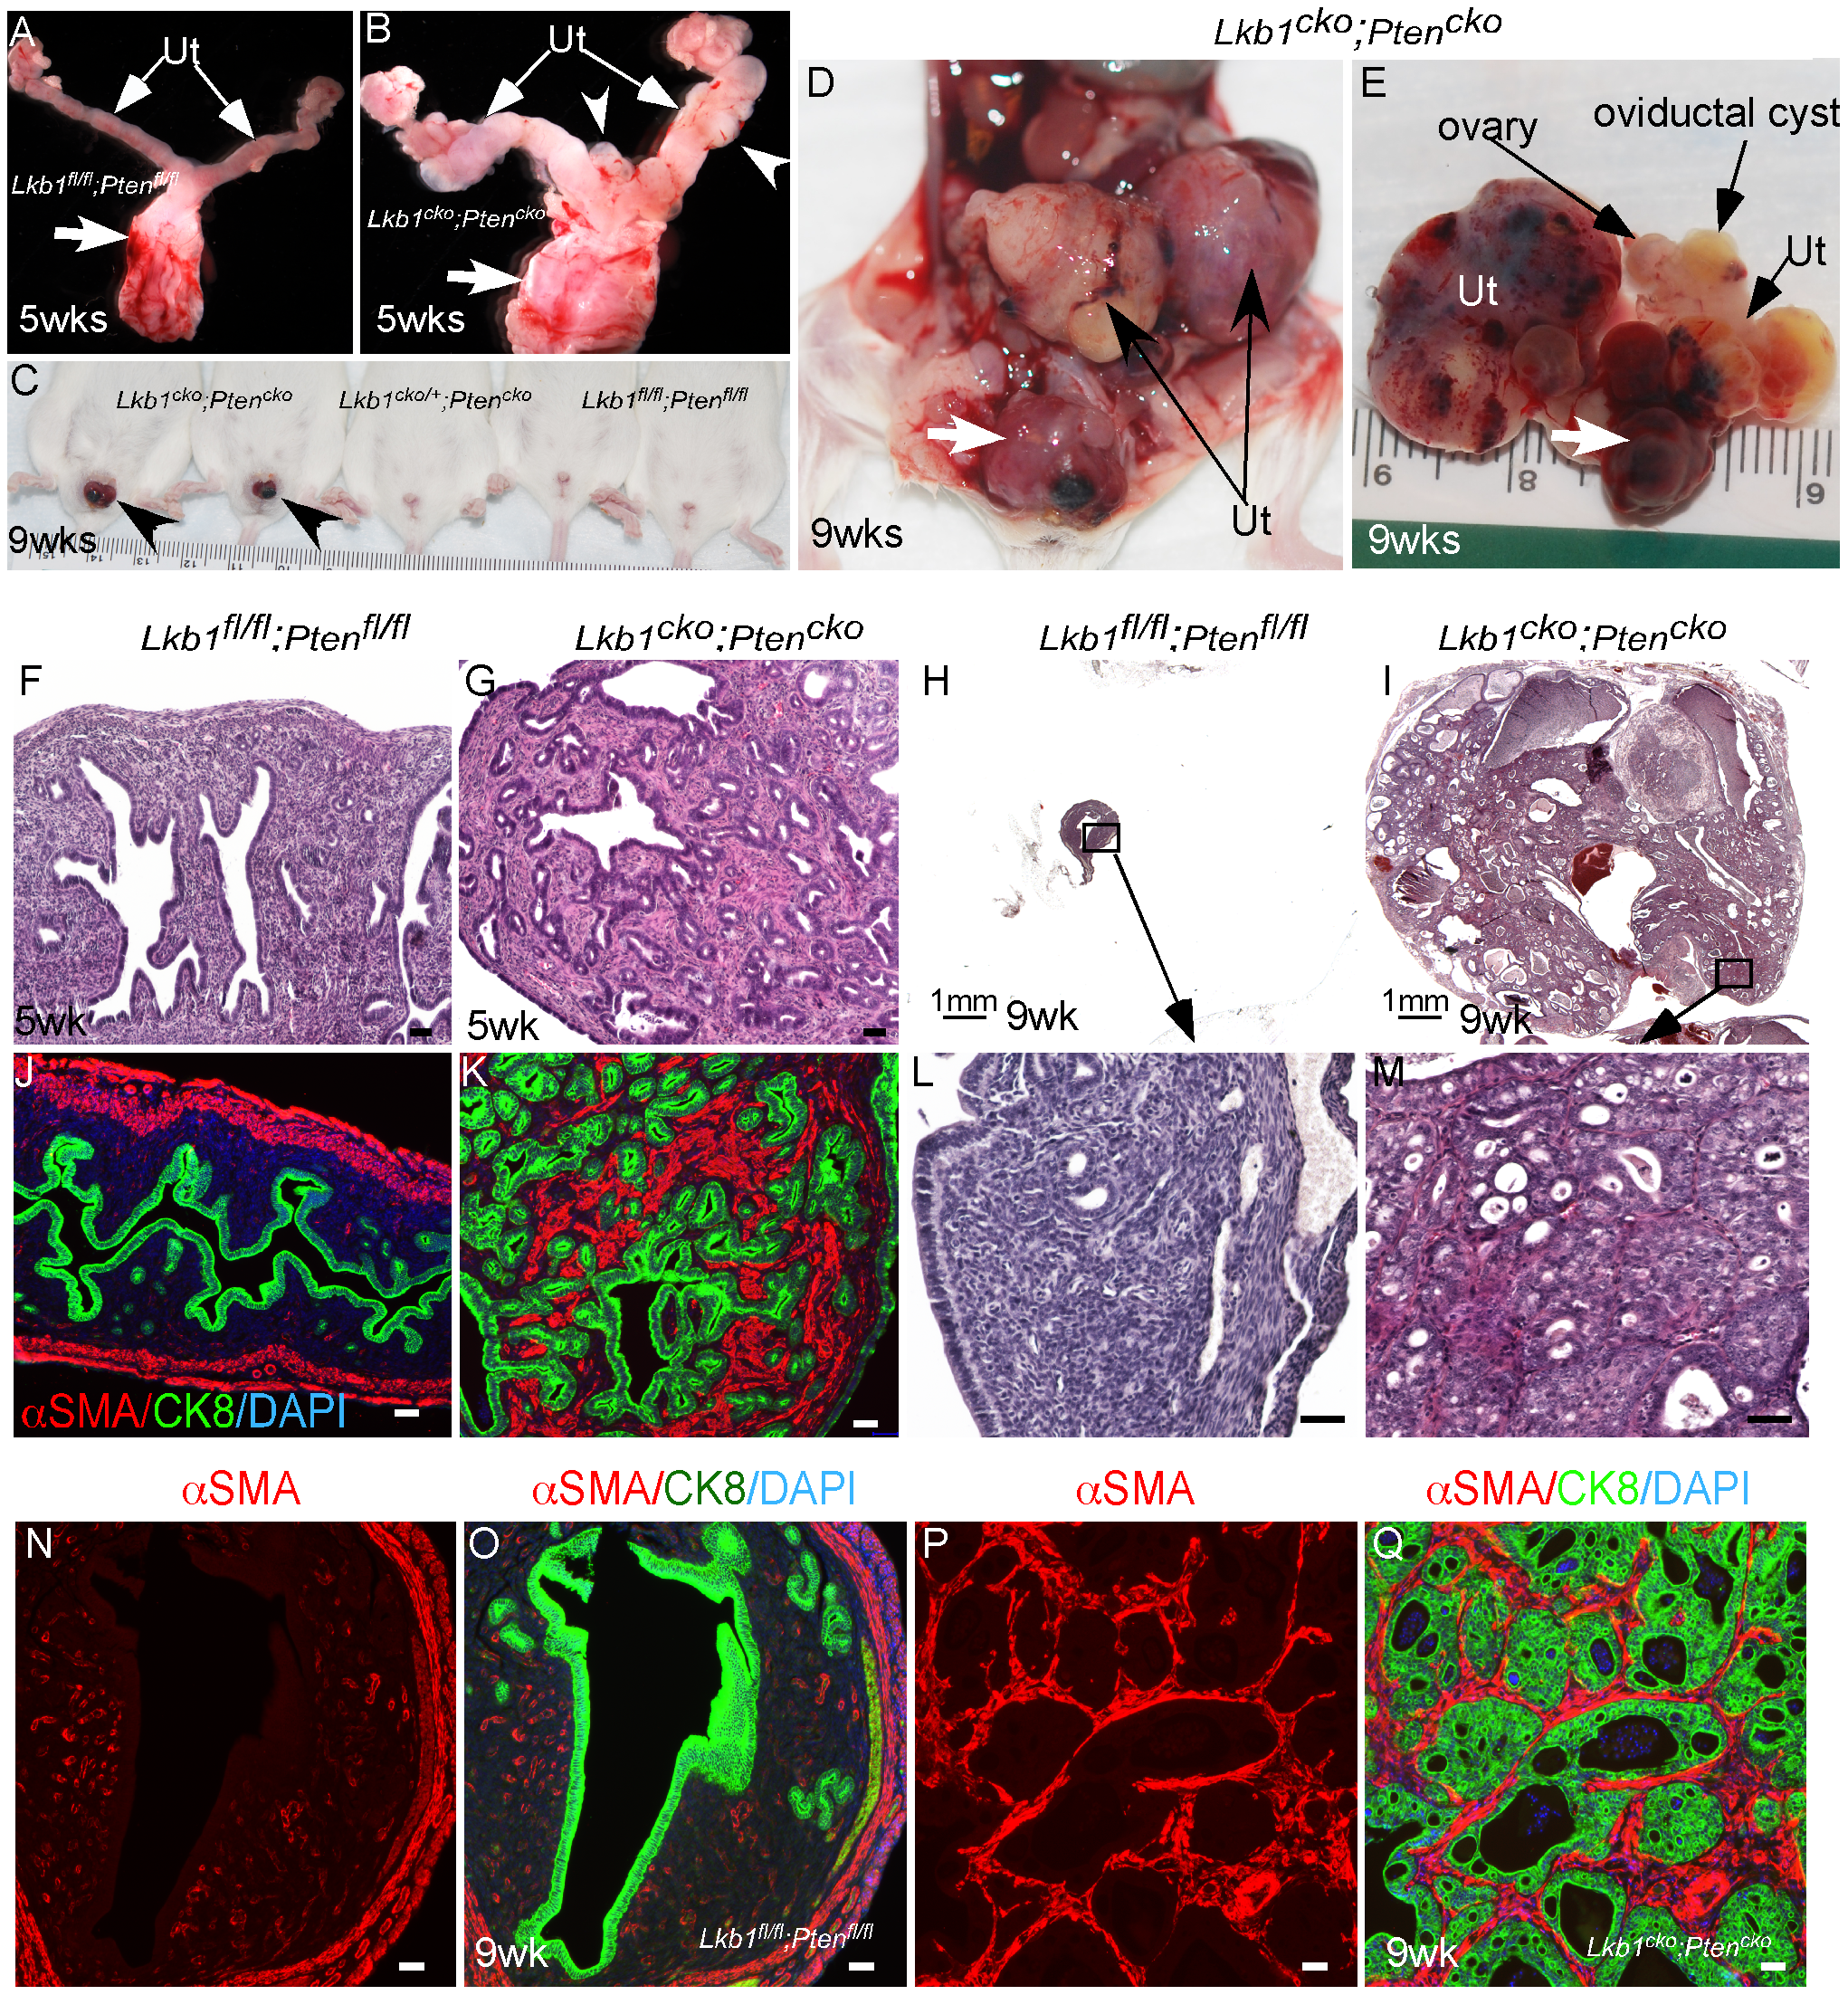 Formation of highly aggressive endometrial adenocarcinoma in <i>Lkb1<sup>cko</sup>;Pten<sup>cko</sup></i> mice.